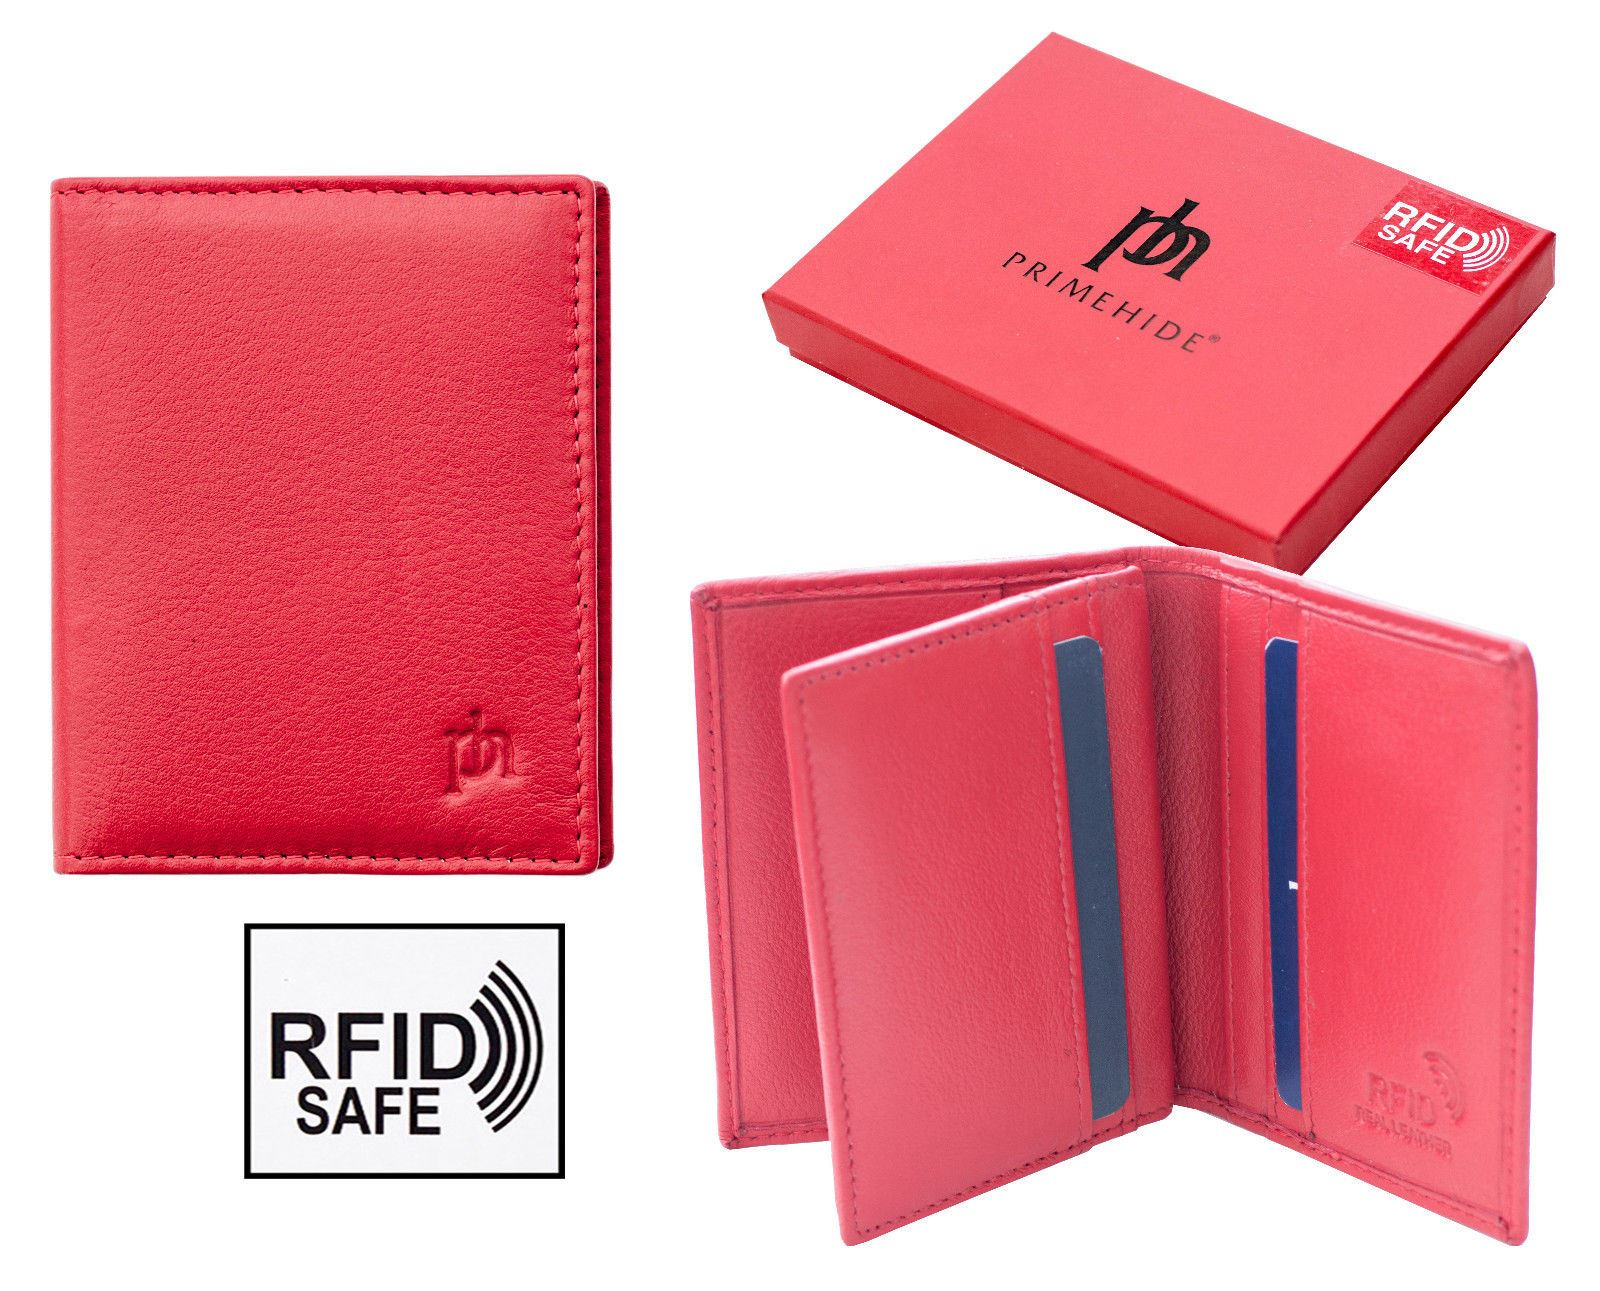 NEW Valentino RFID SAFE Green Leather Credit Card Holder Wallet Gift Boxed